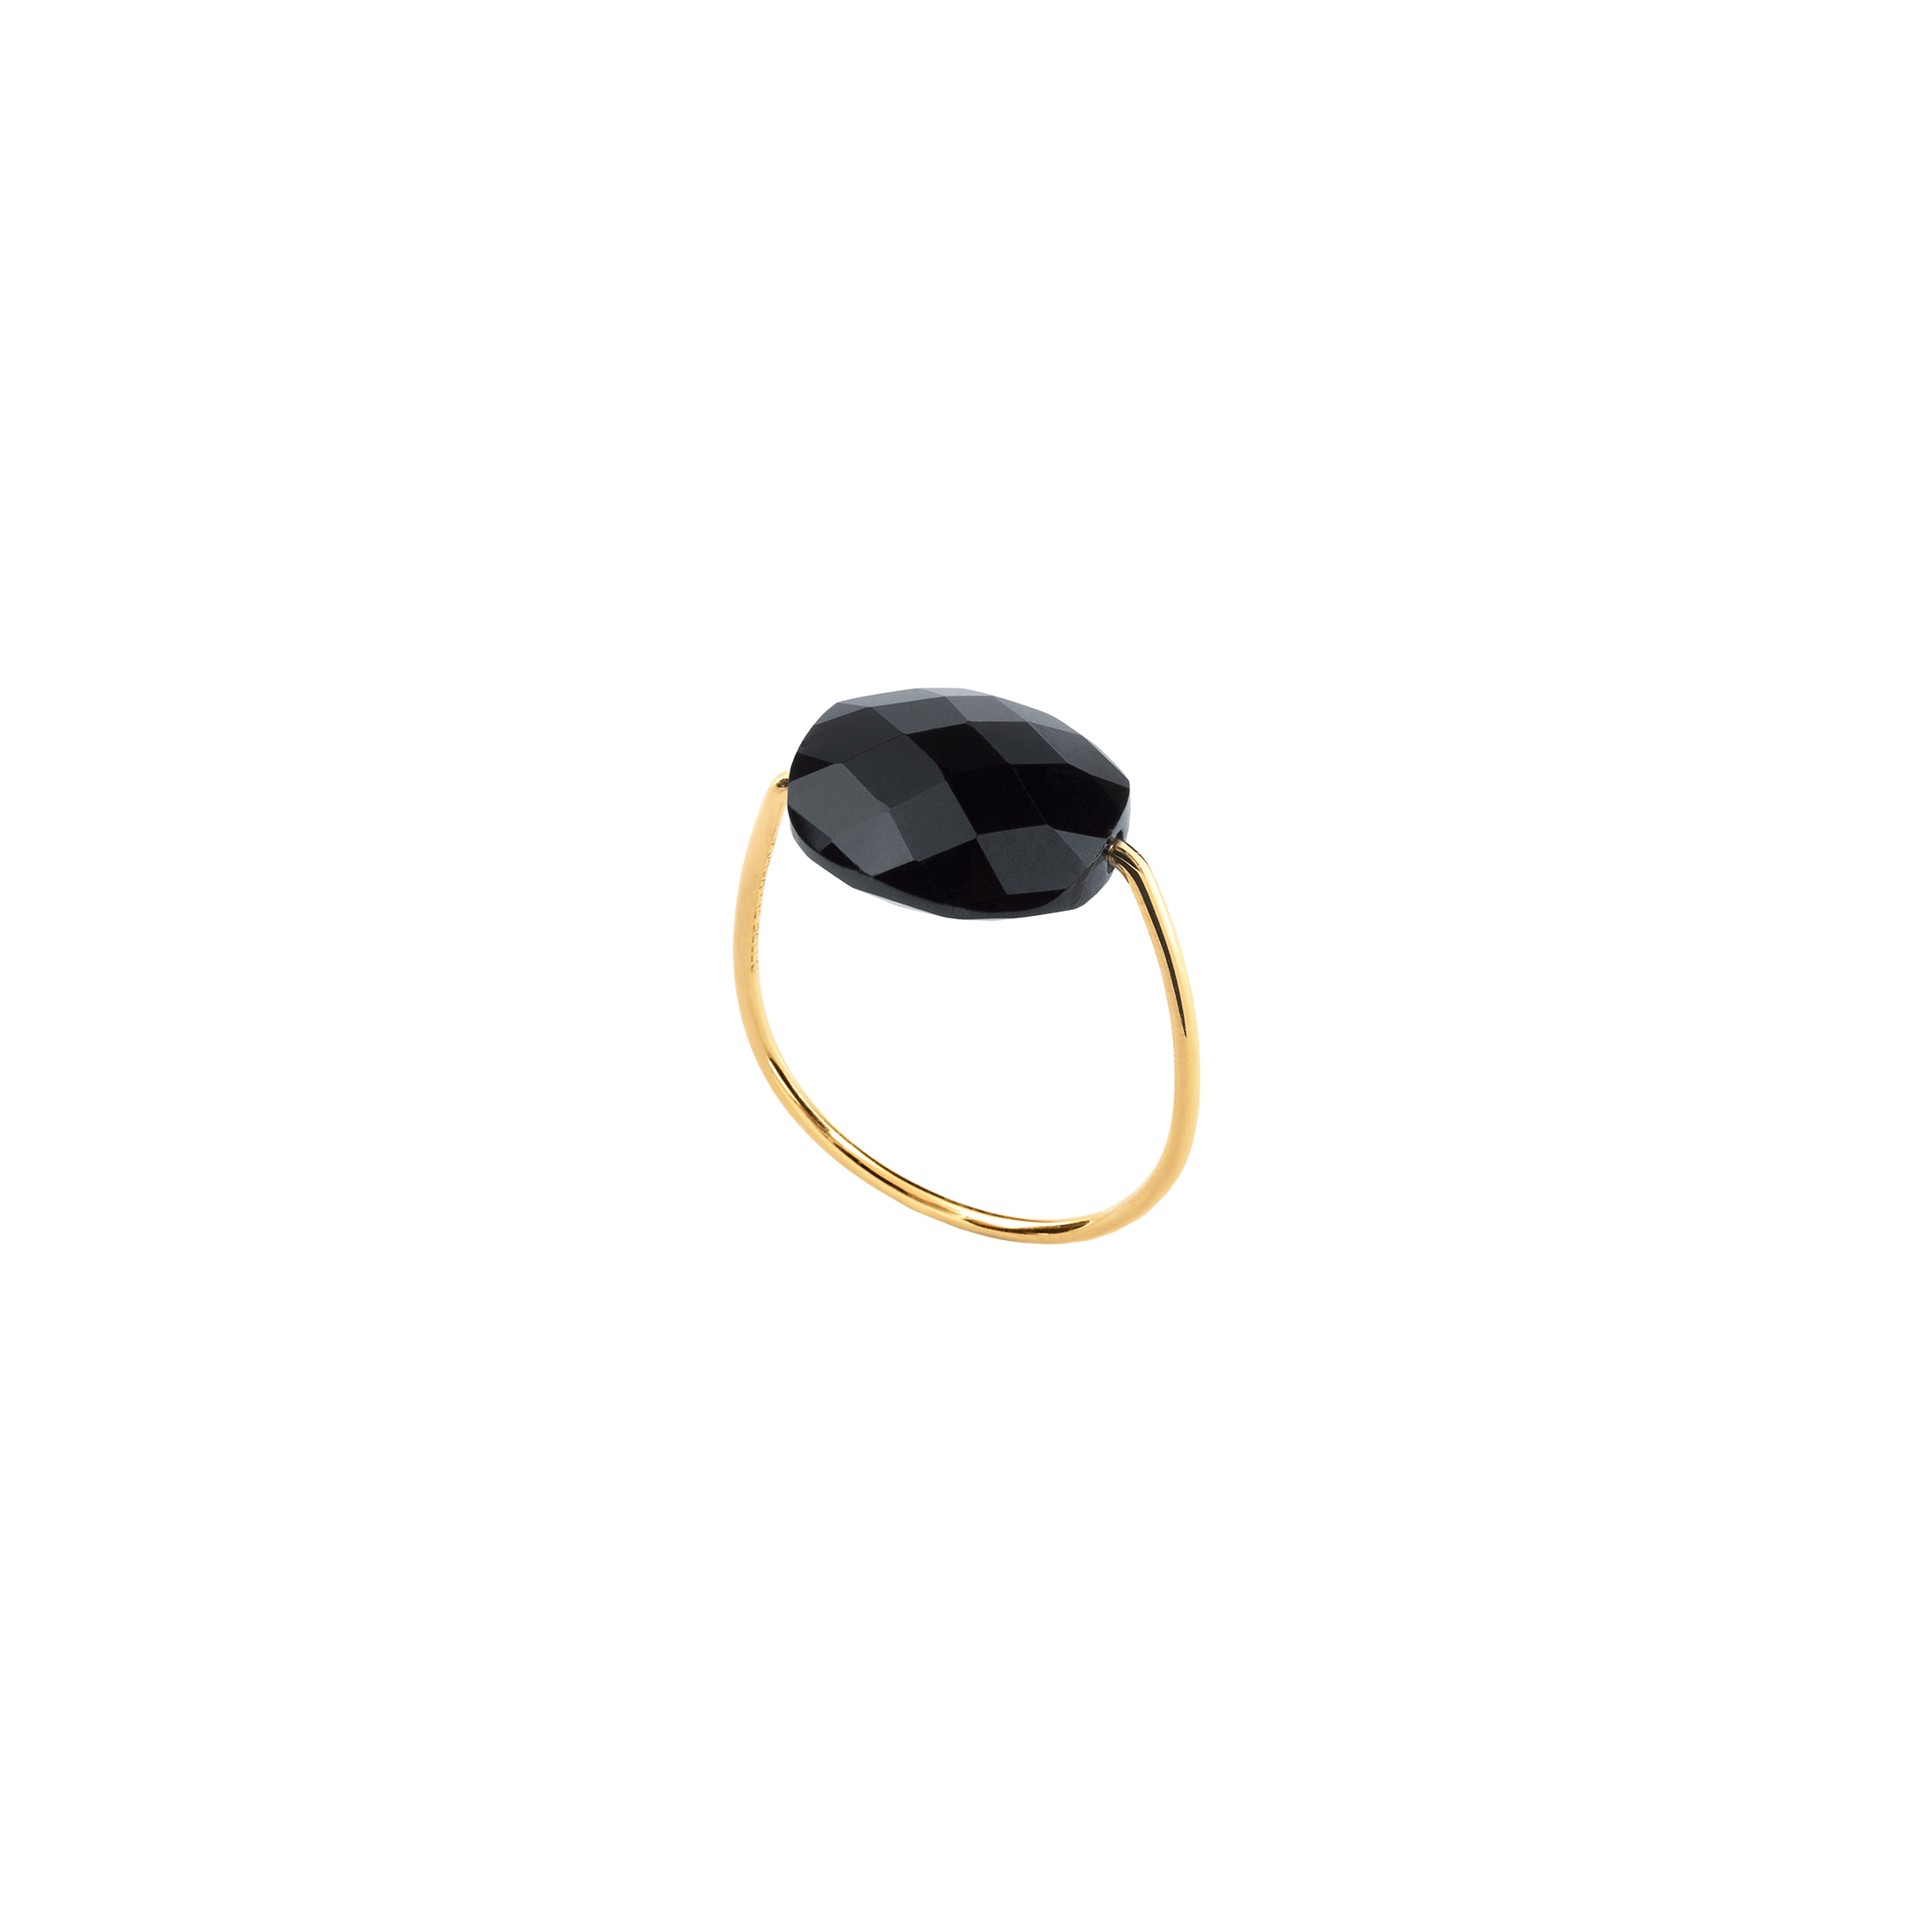 Bague Morganne Bello Friandise onyx taille coussin et or jaune